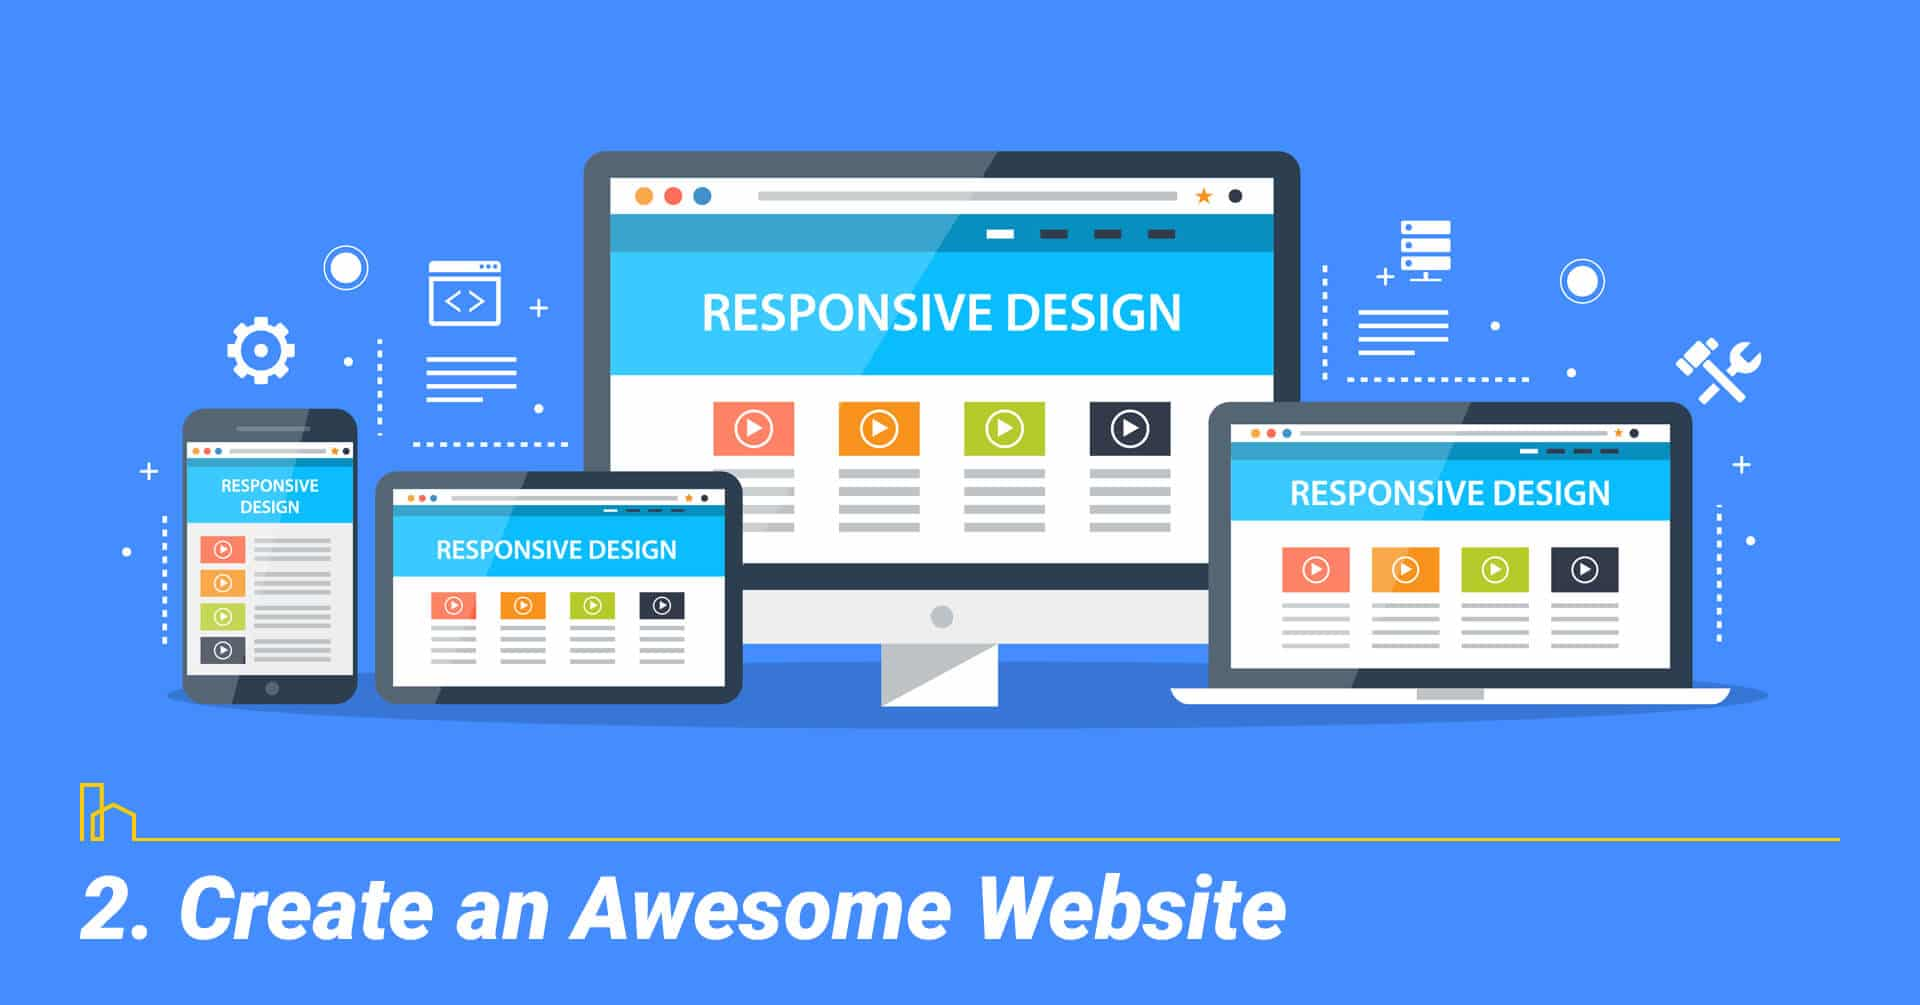 Create an Awesome Website, create a great website for your business